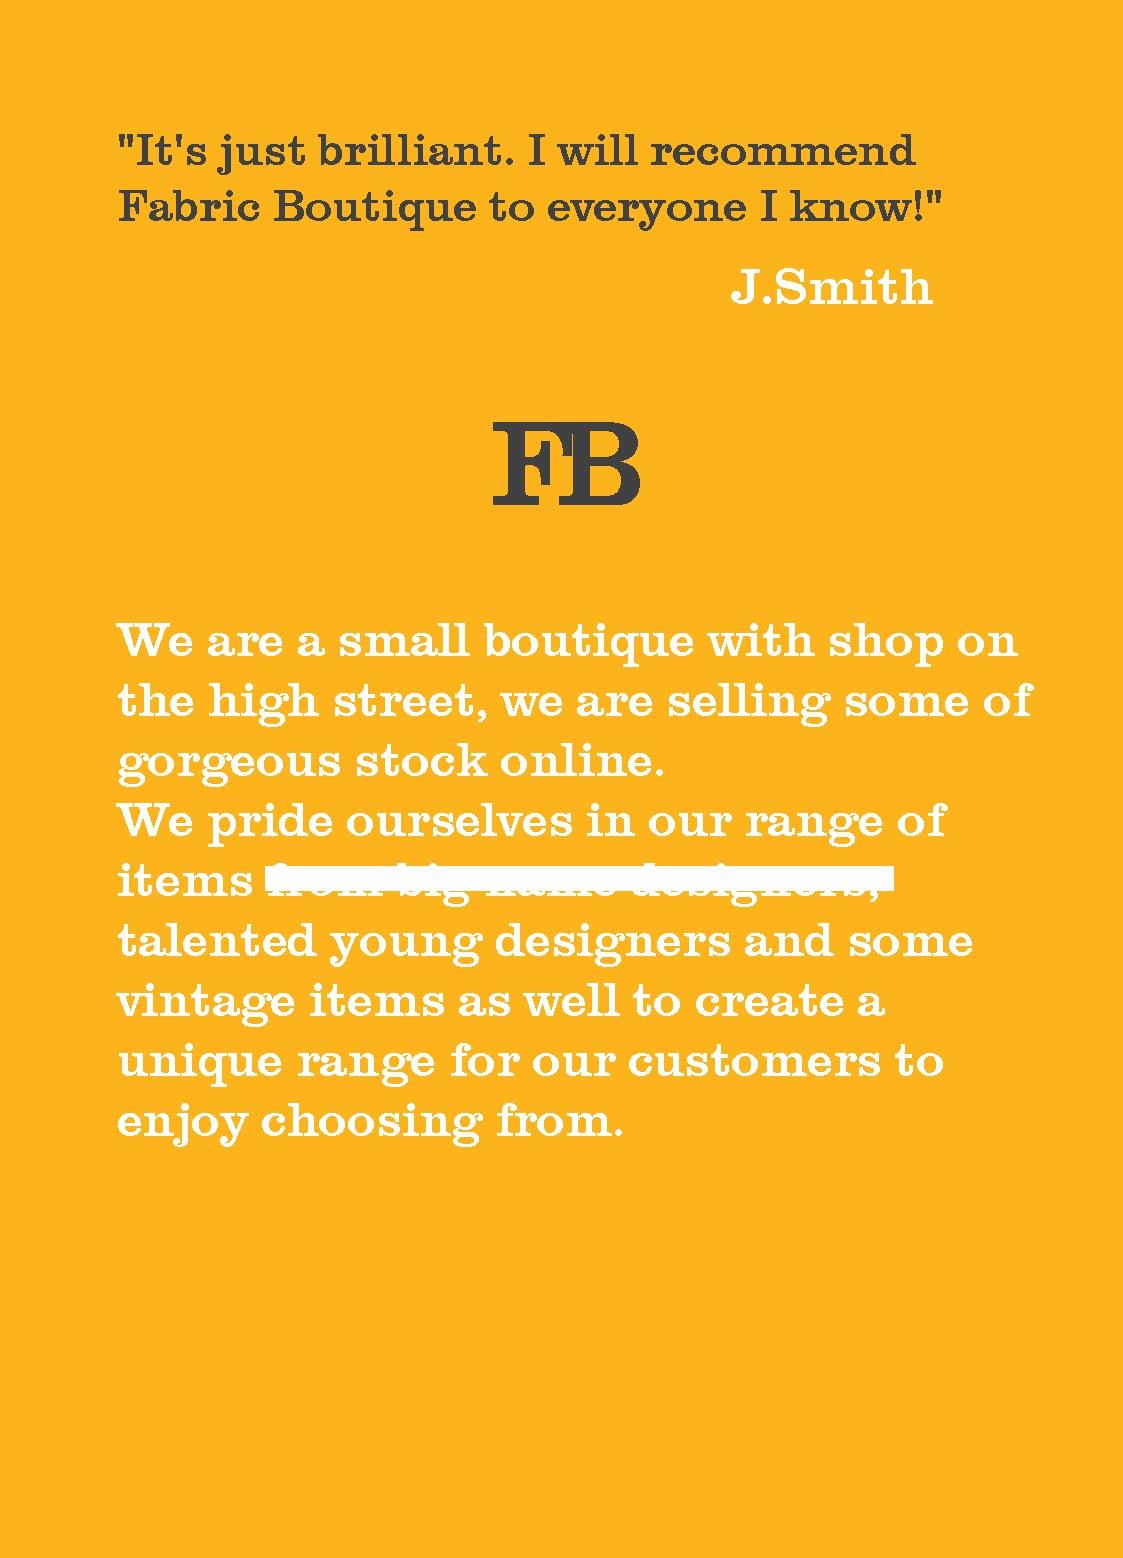 Free Leaflet Flyer Design Templates - Free handyman invoice template junior clothing stores online